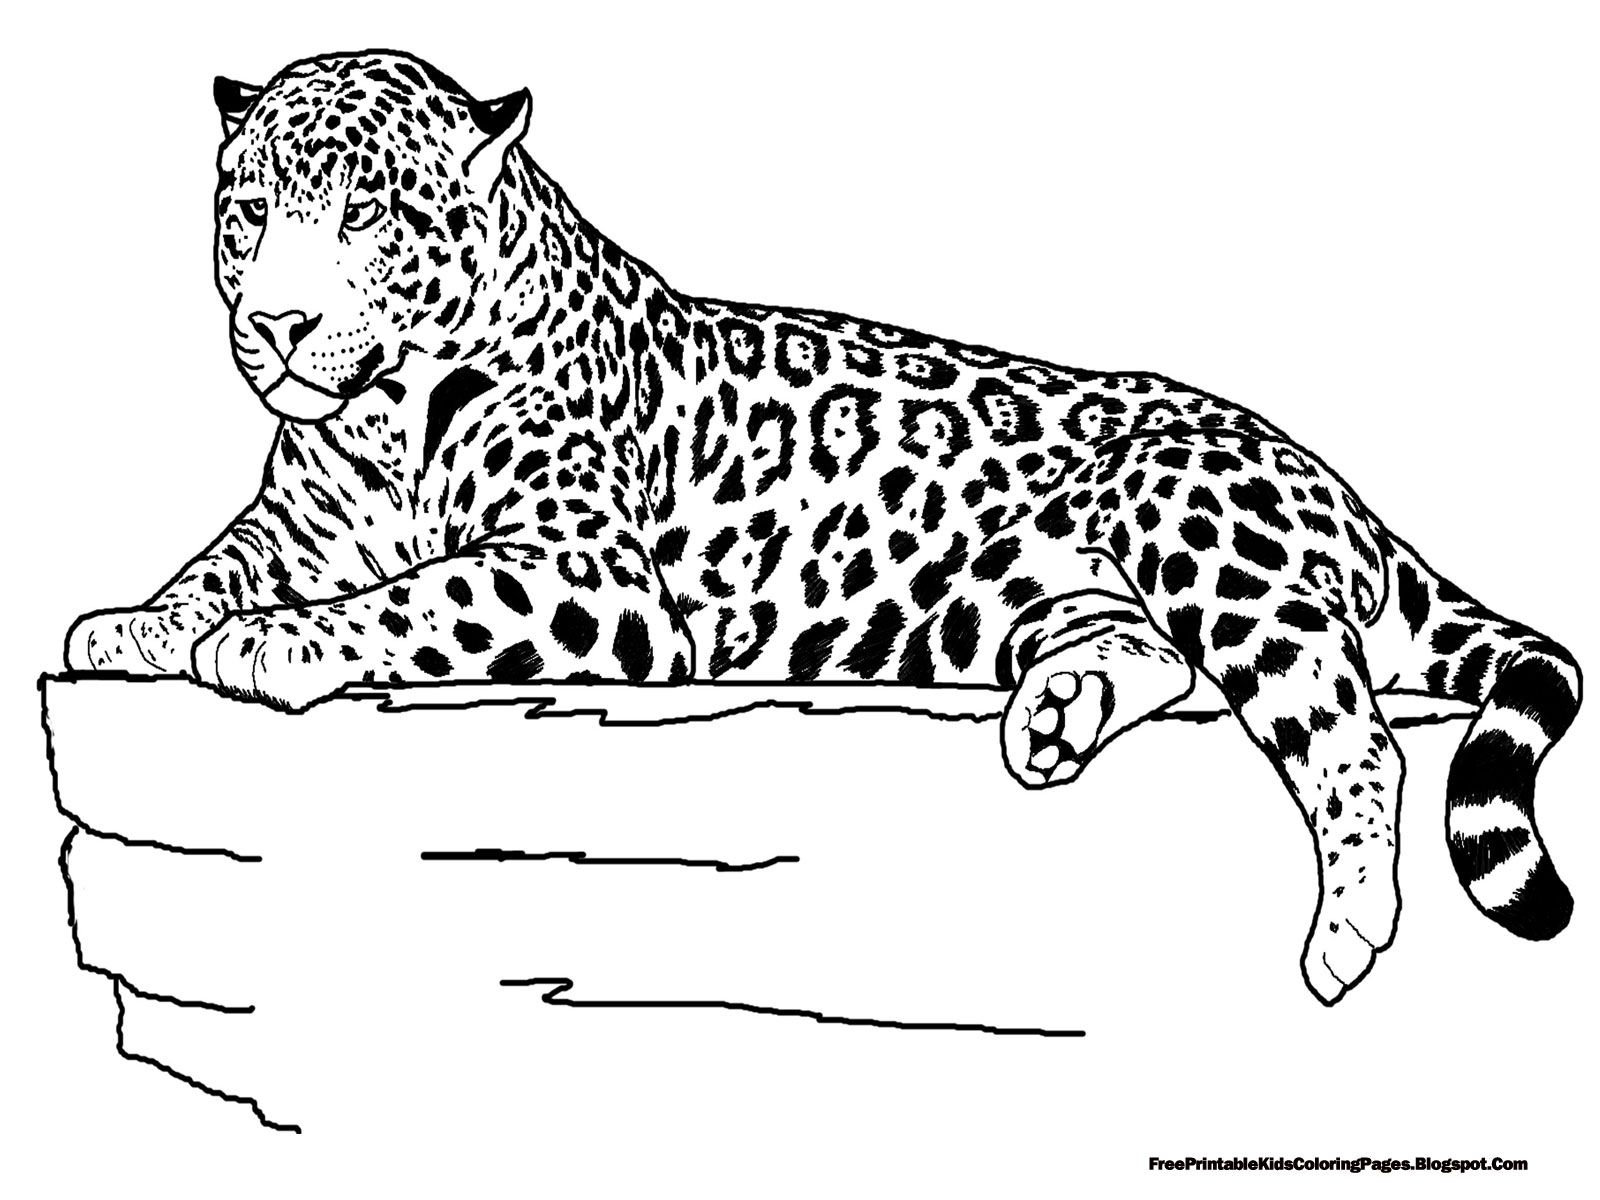 Zoo Animal Coloring Pages Also Available Are Farm Animals With Realistic